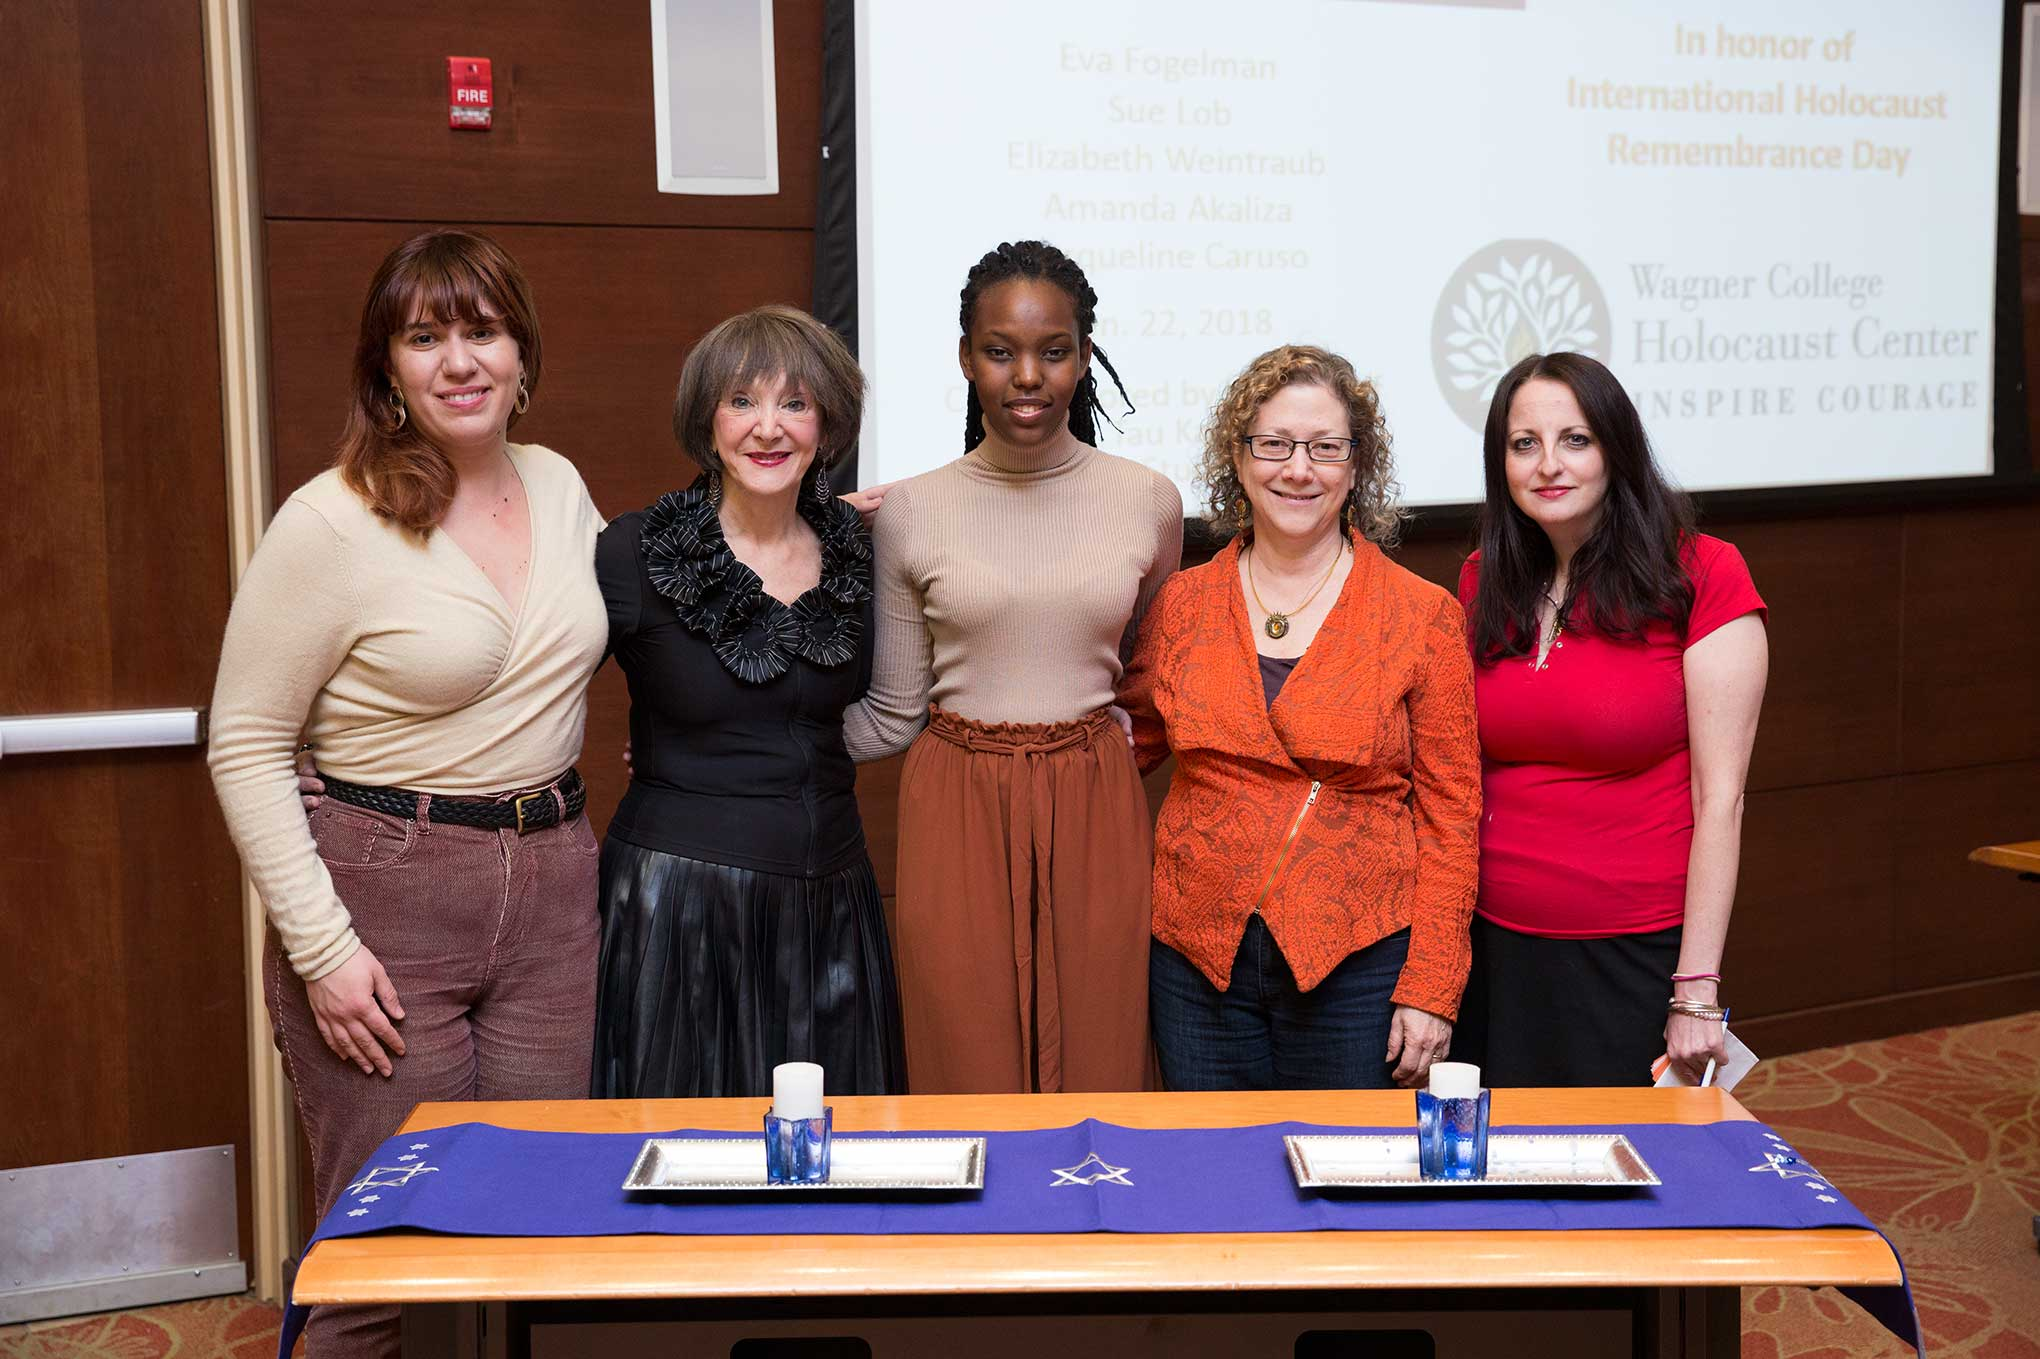 The five women stand together behind a table with a blue runner and candles.